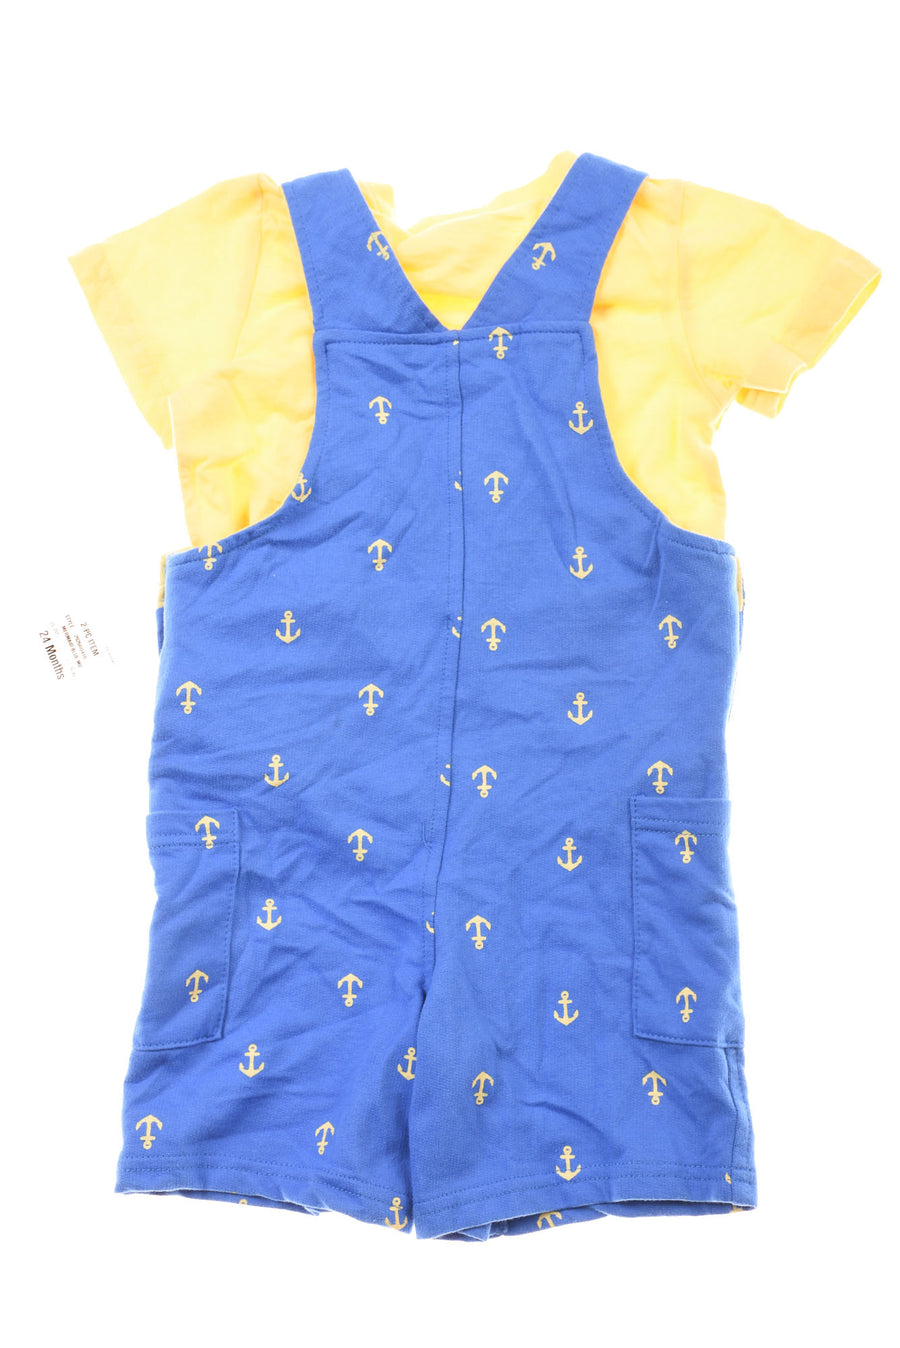 Baby Boy's Outfit By First Impressions